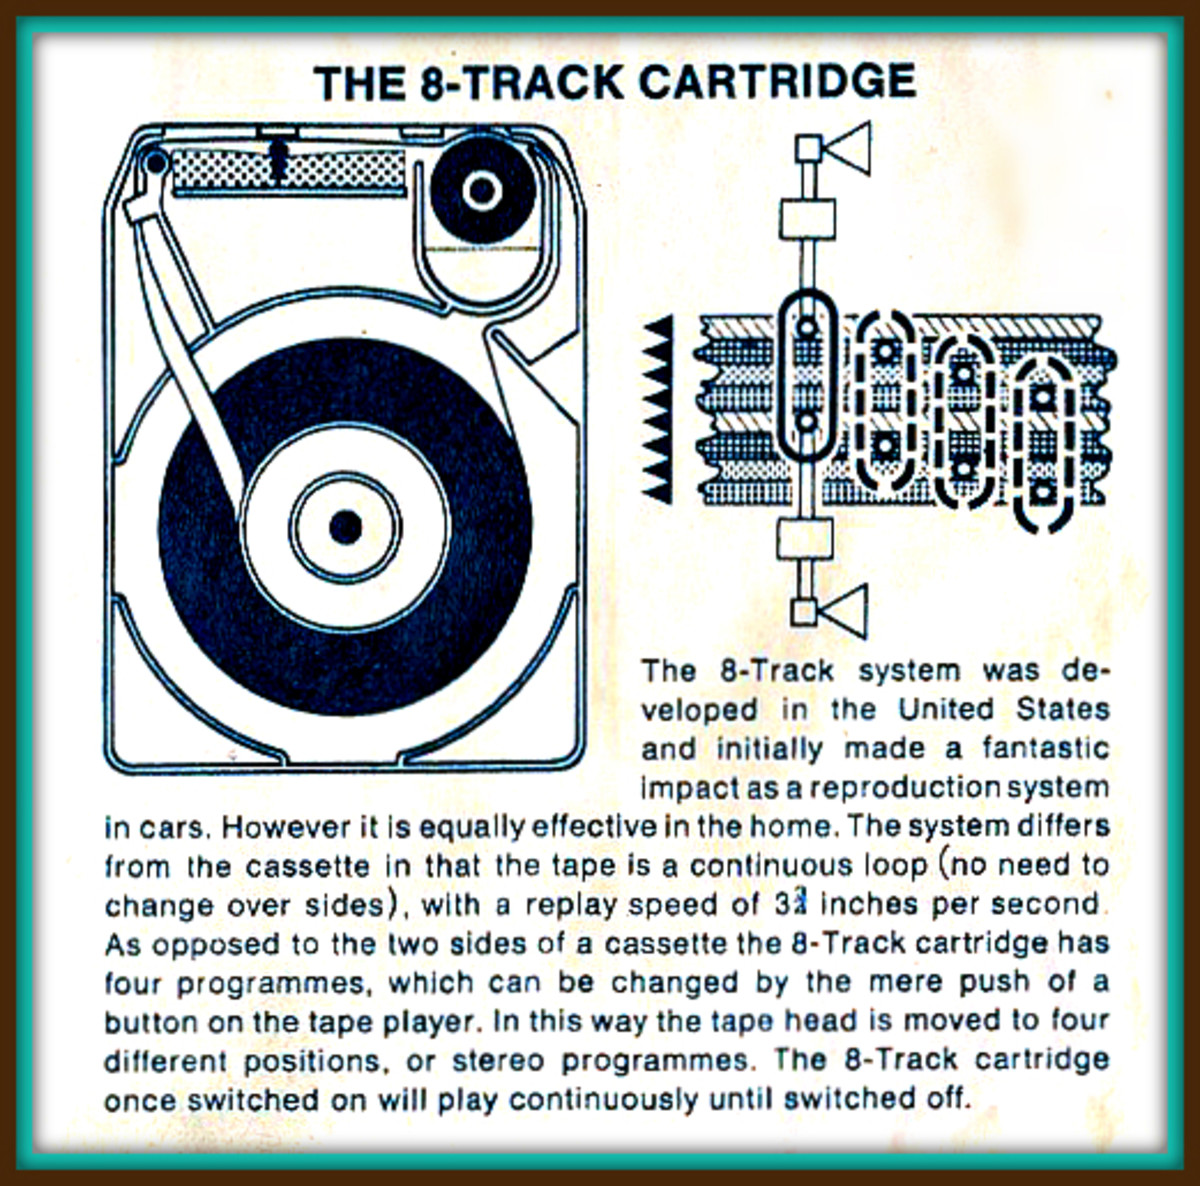 A a new spacing design that would allow the playing and recording of two tracks, or what the technicians would call one pure stereo program that could be flawlessly played off only a quarter of an inch tape; and amazingly this tape held a total of 8-